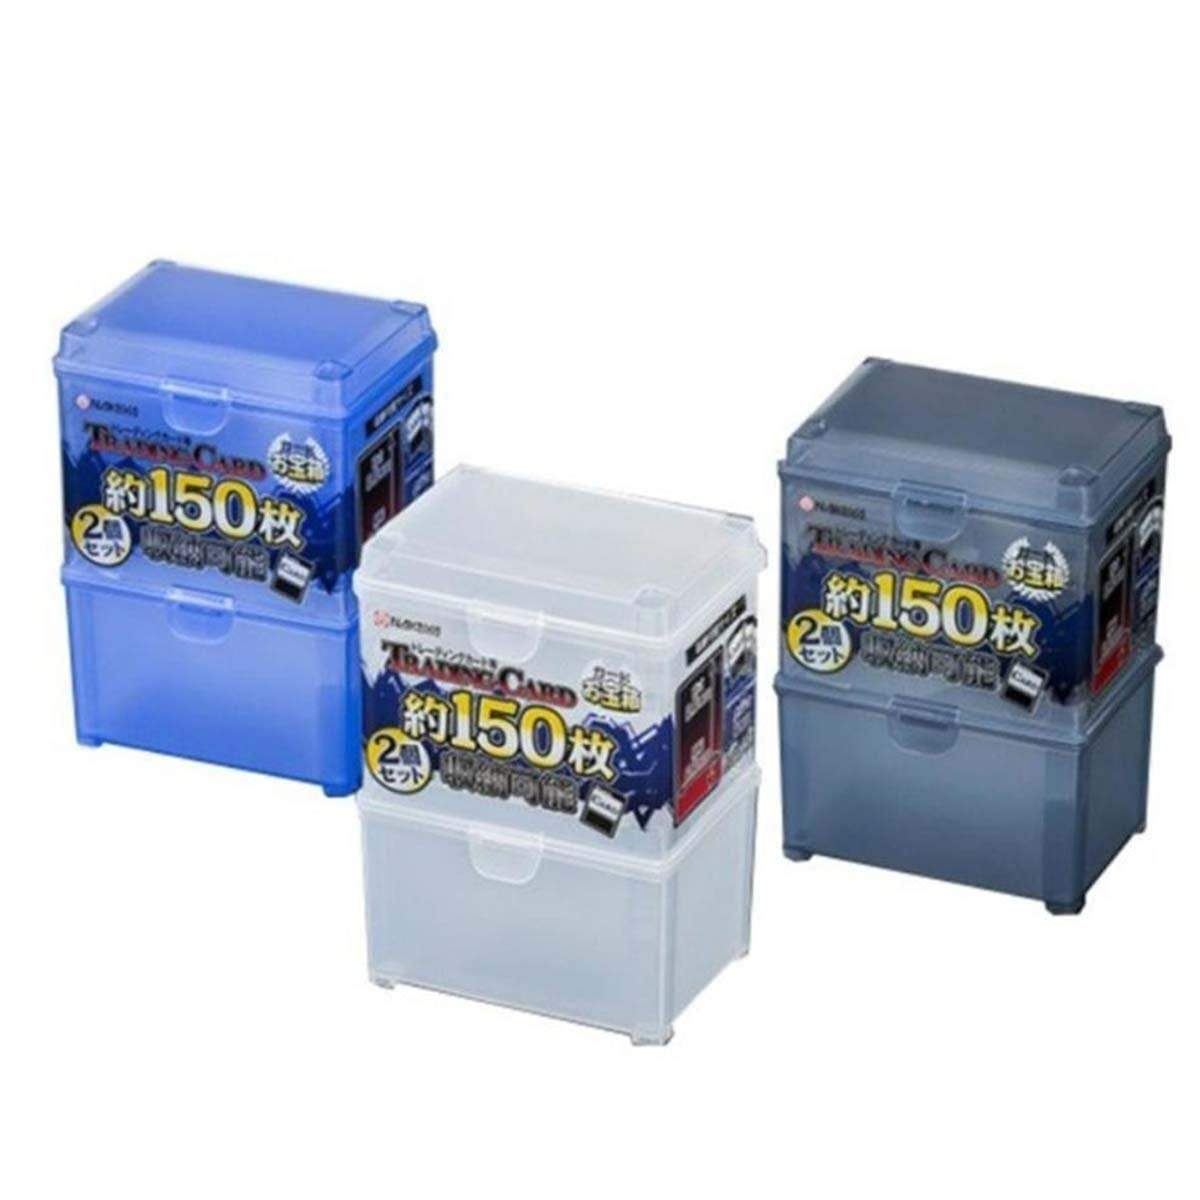 Japanese Plastic Card Storage Case Box